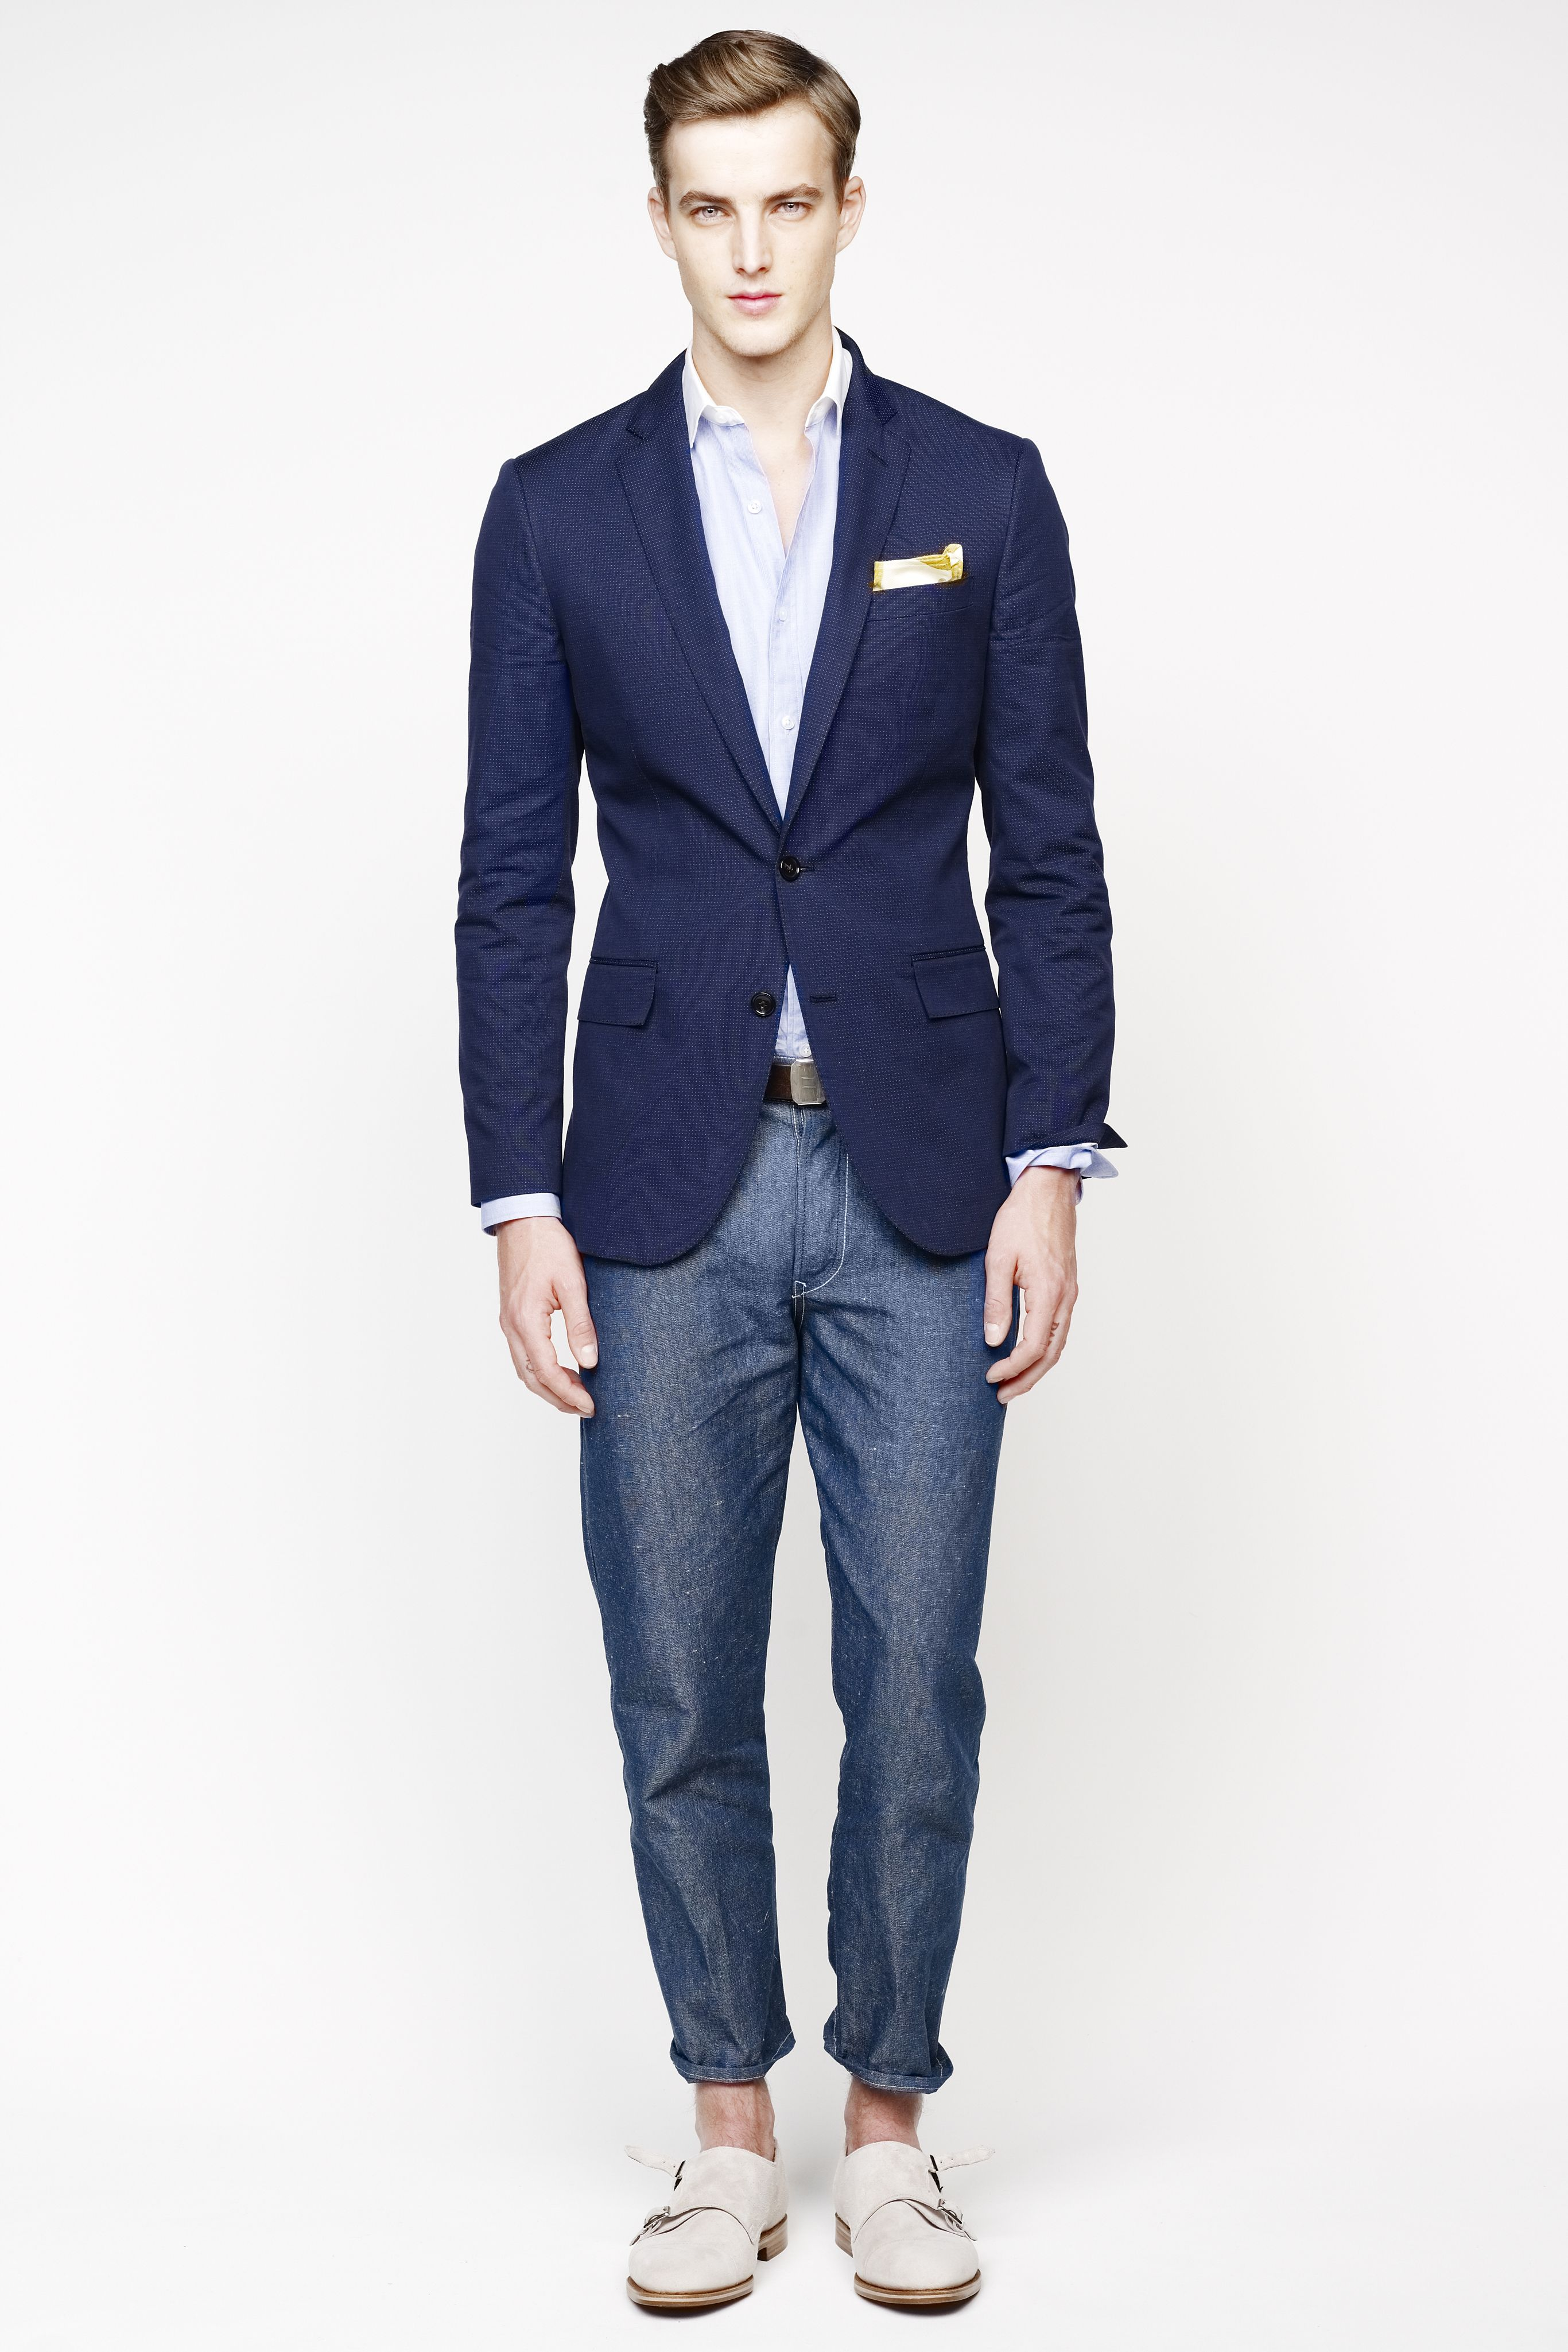 Discussion on this topic: J.Crew Menswear: AW14 Collection, j-crew-menswear-aw14-collection/